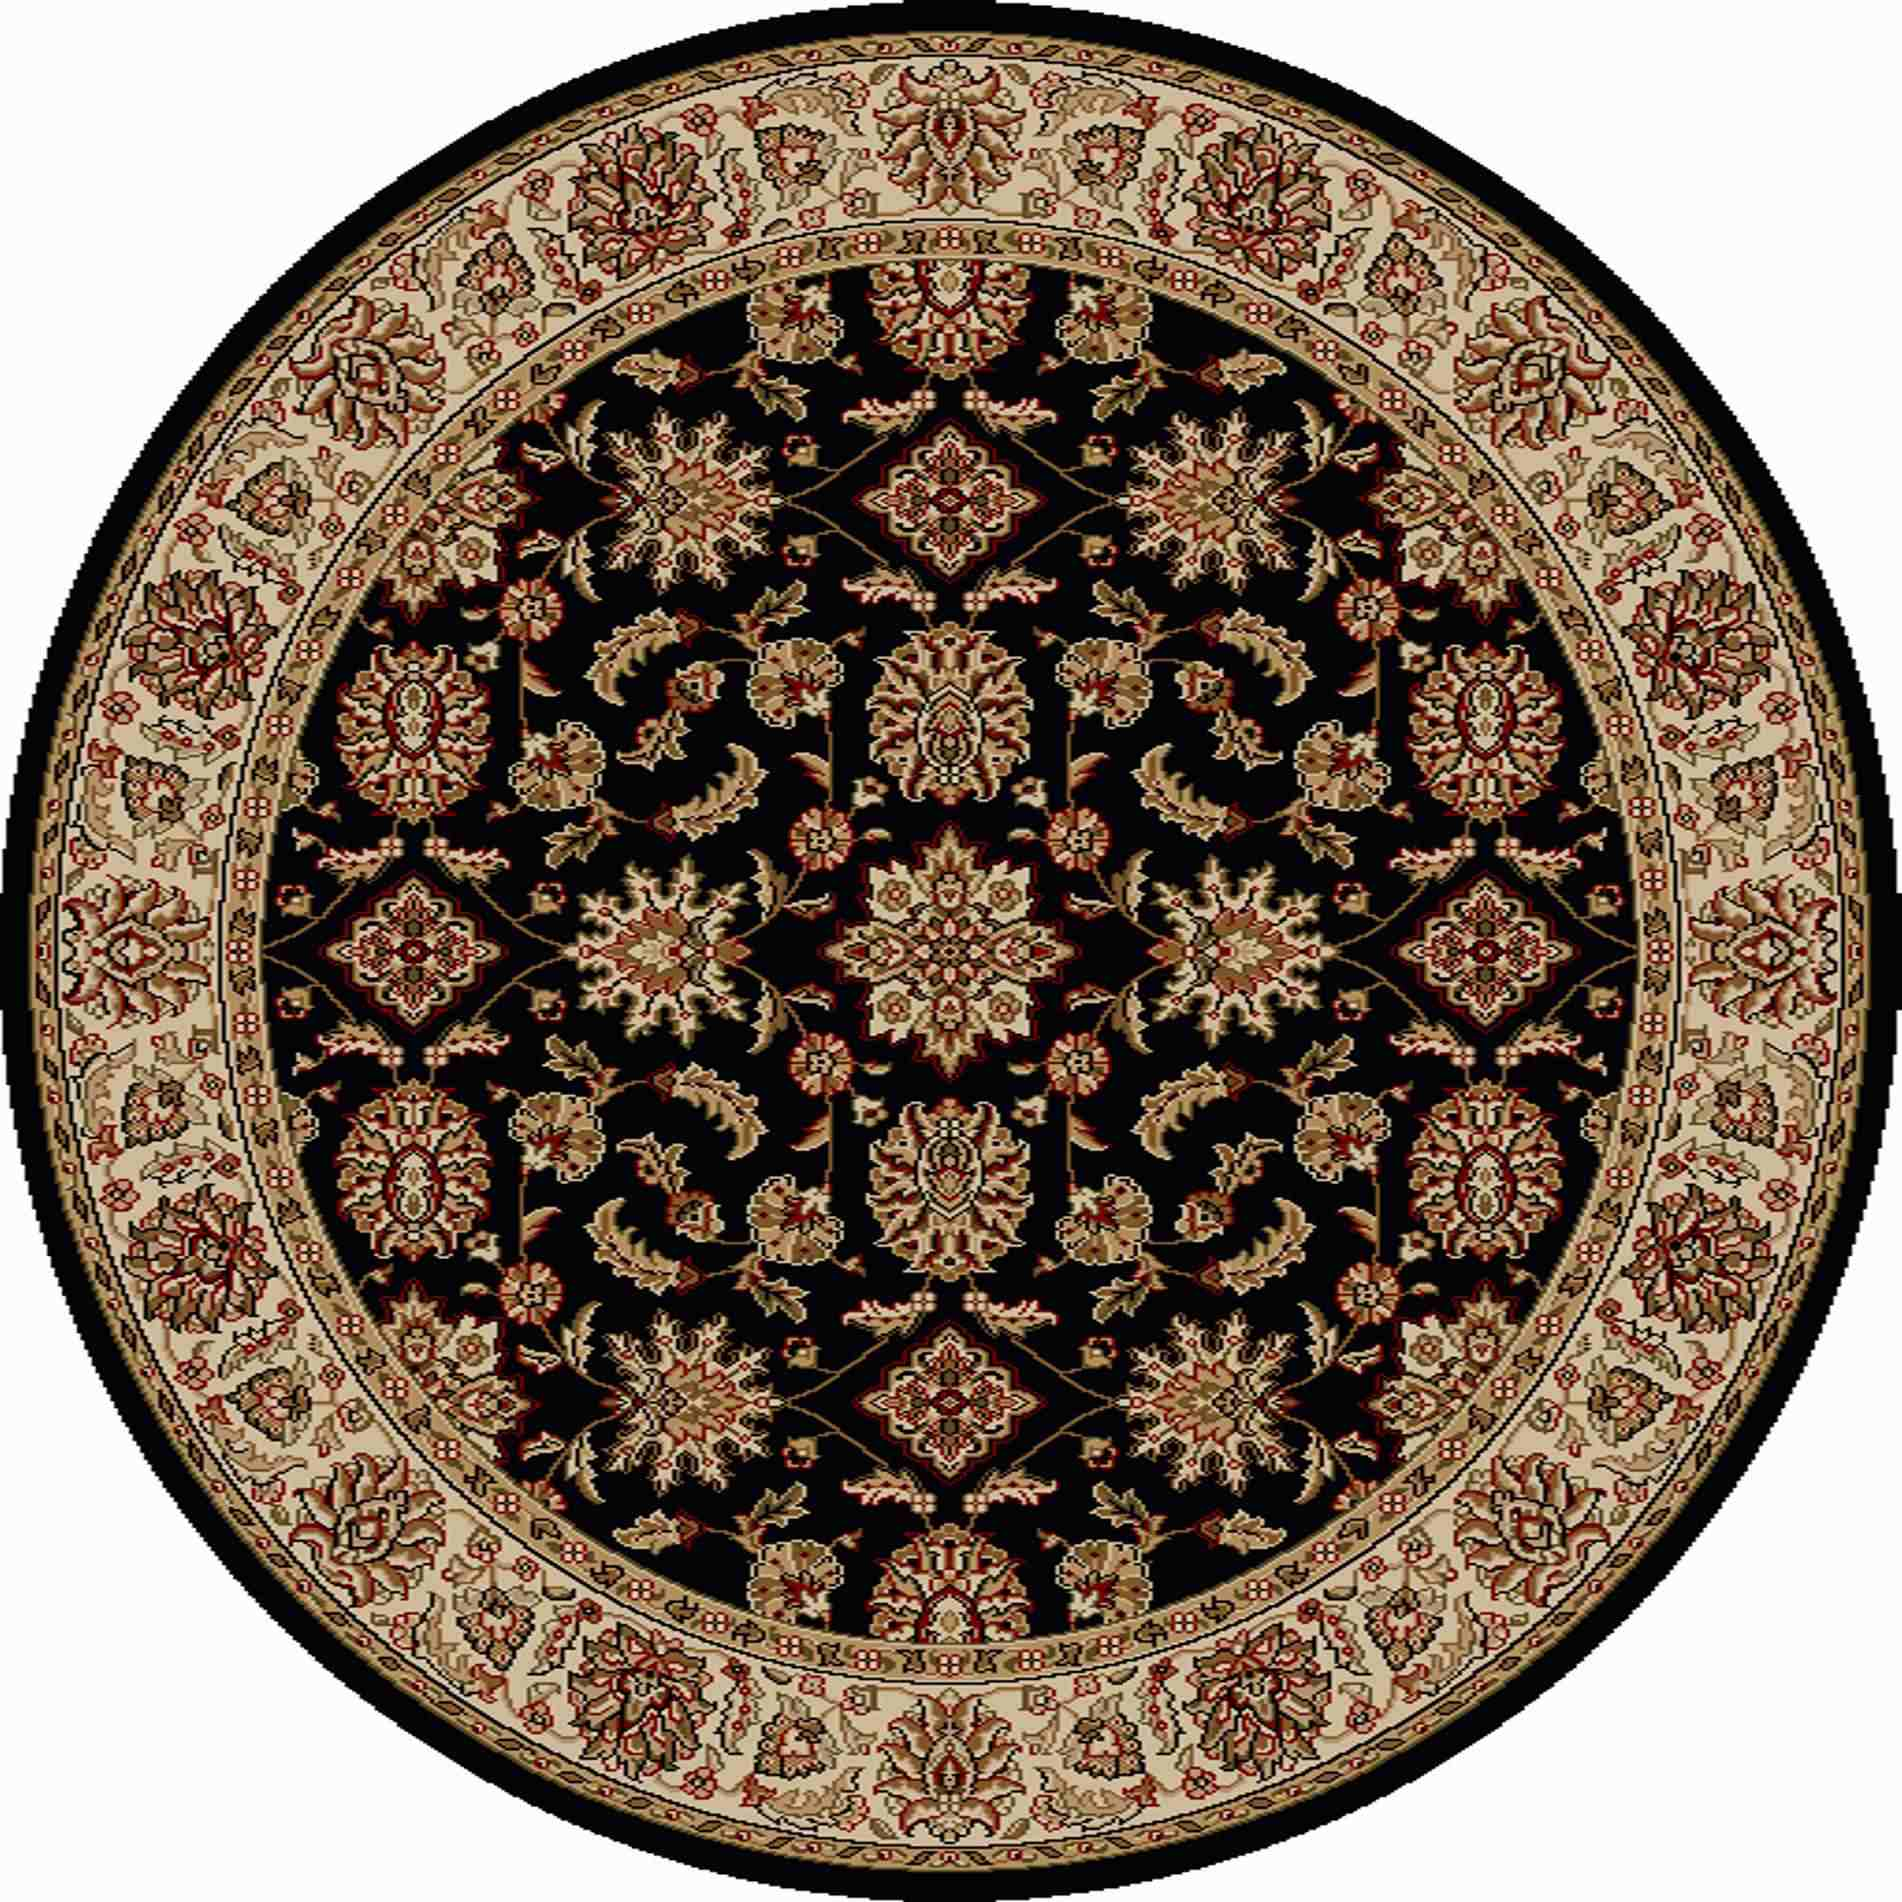 Radici Usa Como 1592 Black Traditional Area Rug